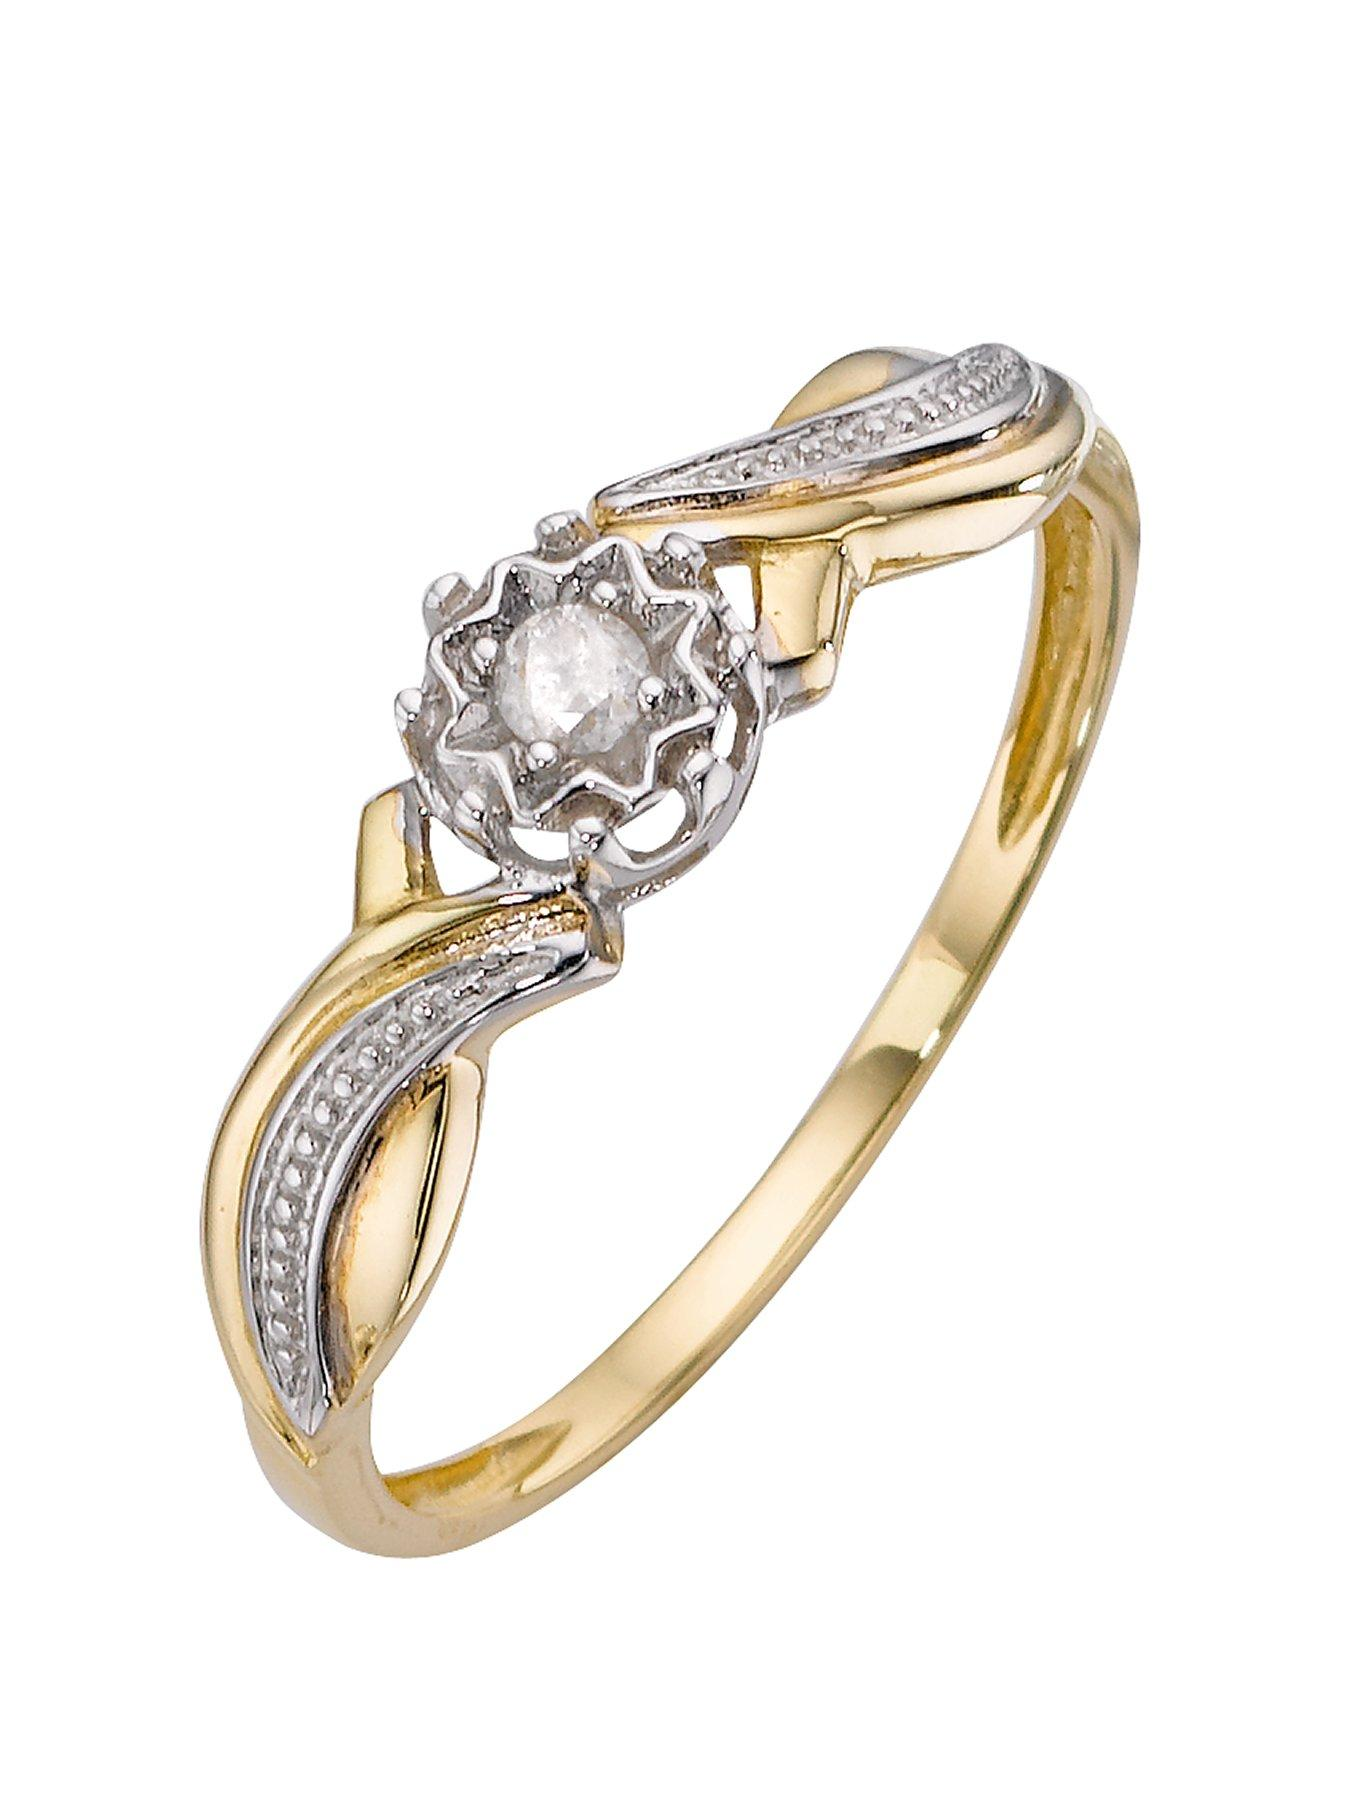 9 Carat Yellow Gold 5 Point Diamond Twist Shoulder Ring